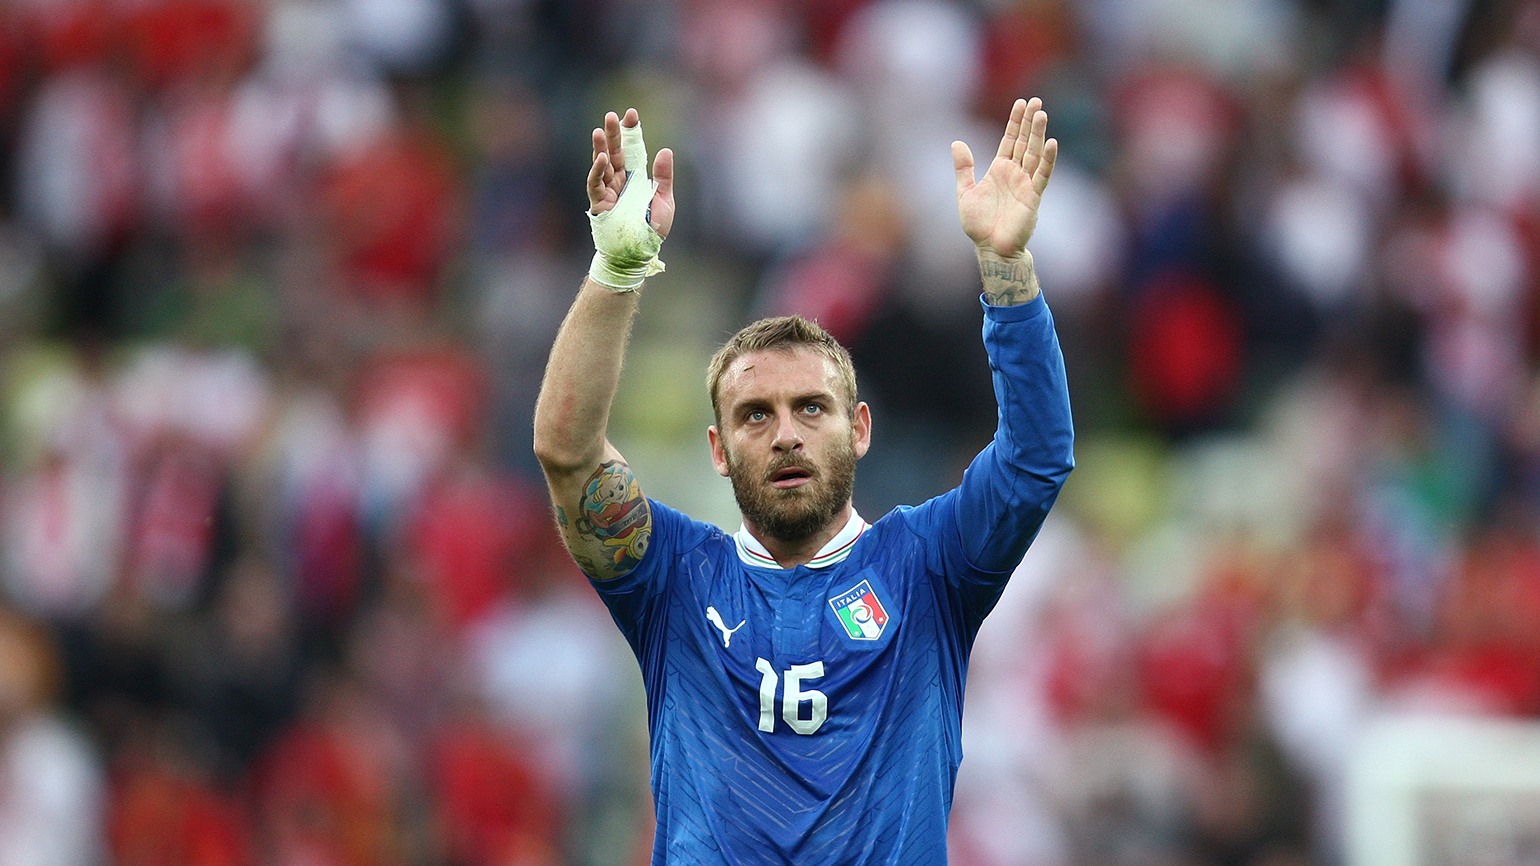 Quiz: How much do you know about Daniele De Rossi's international career?